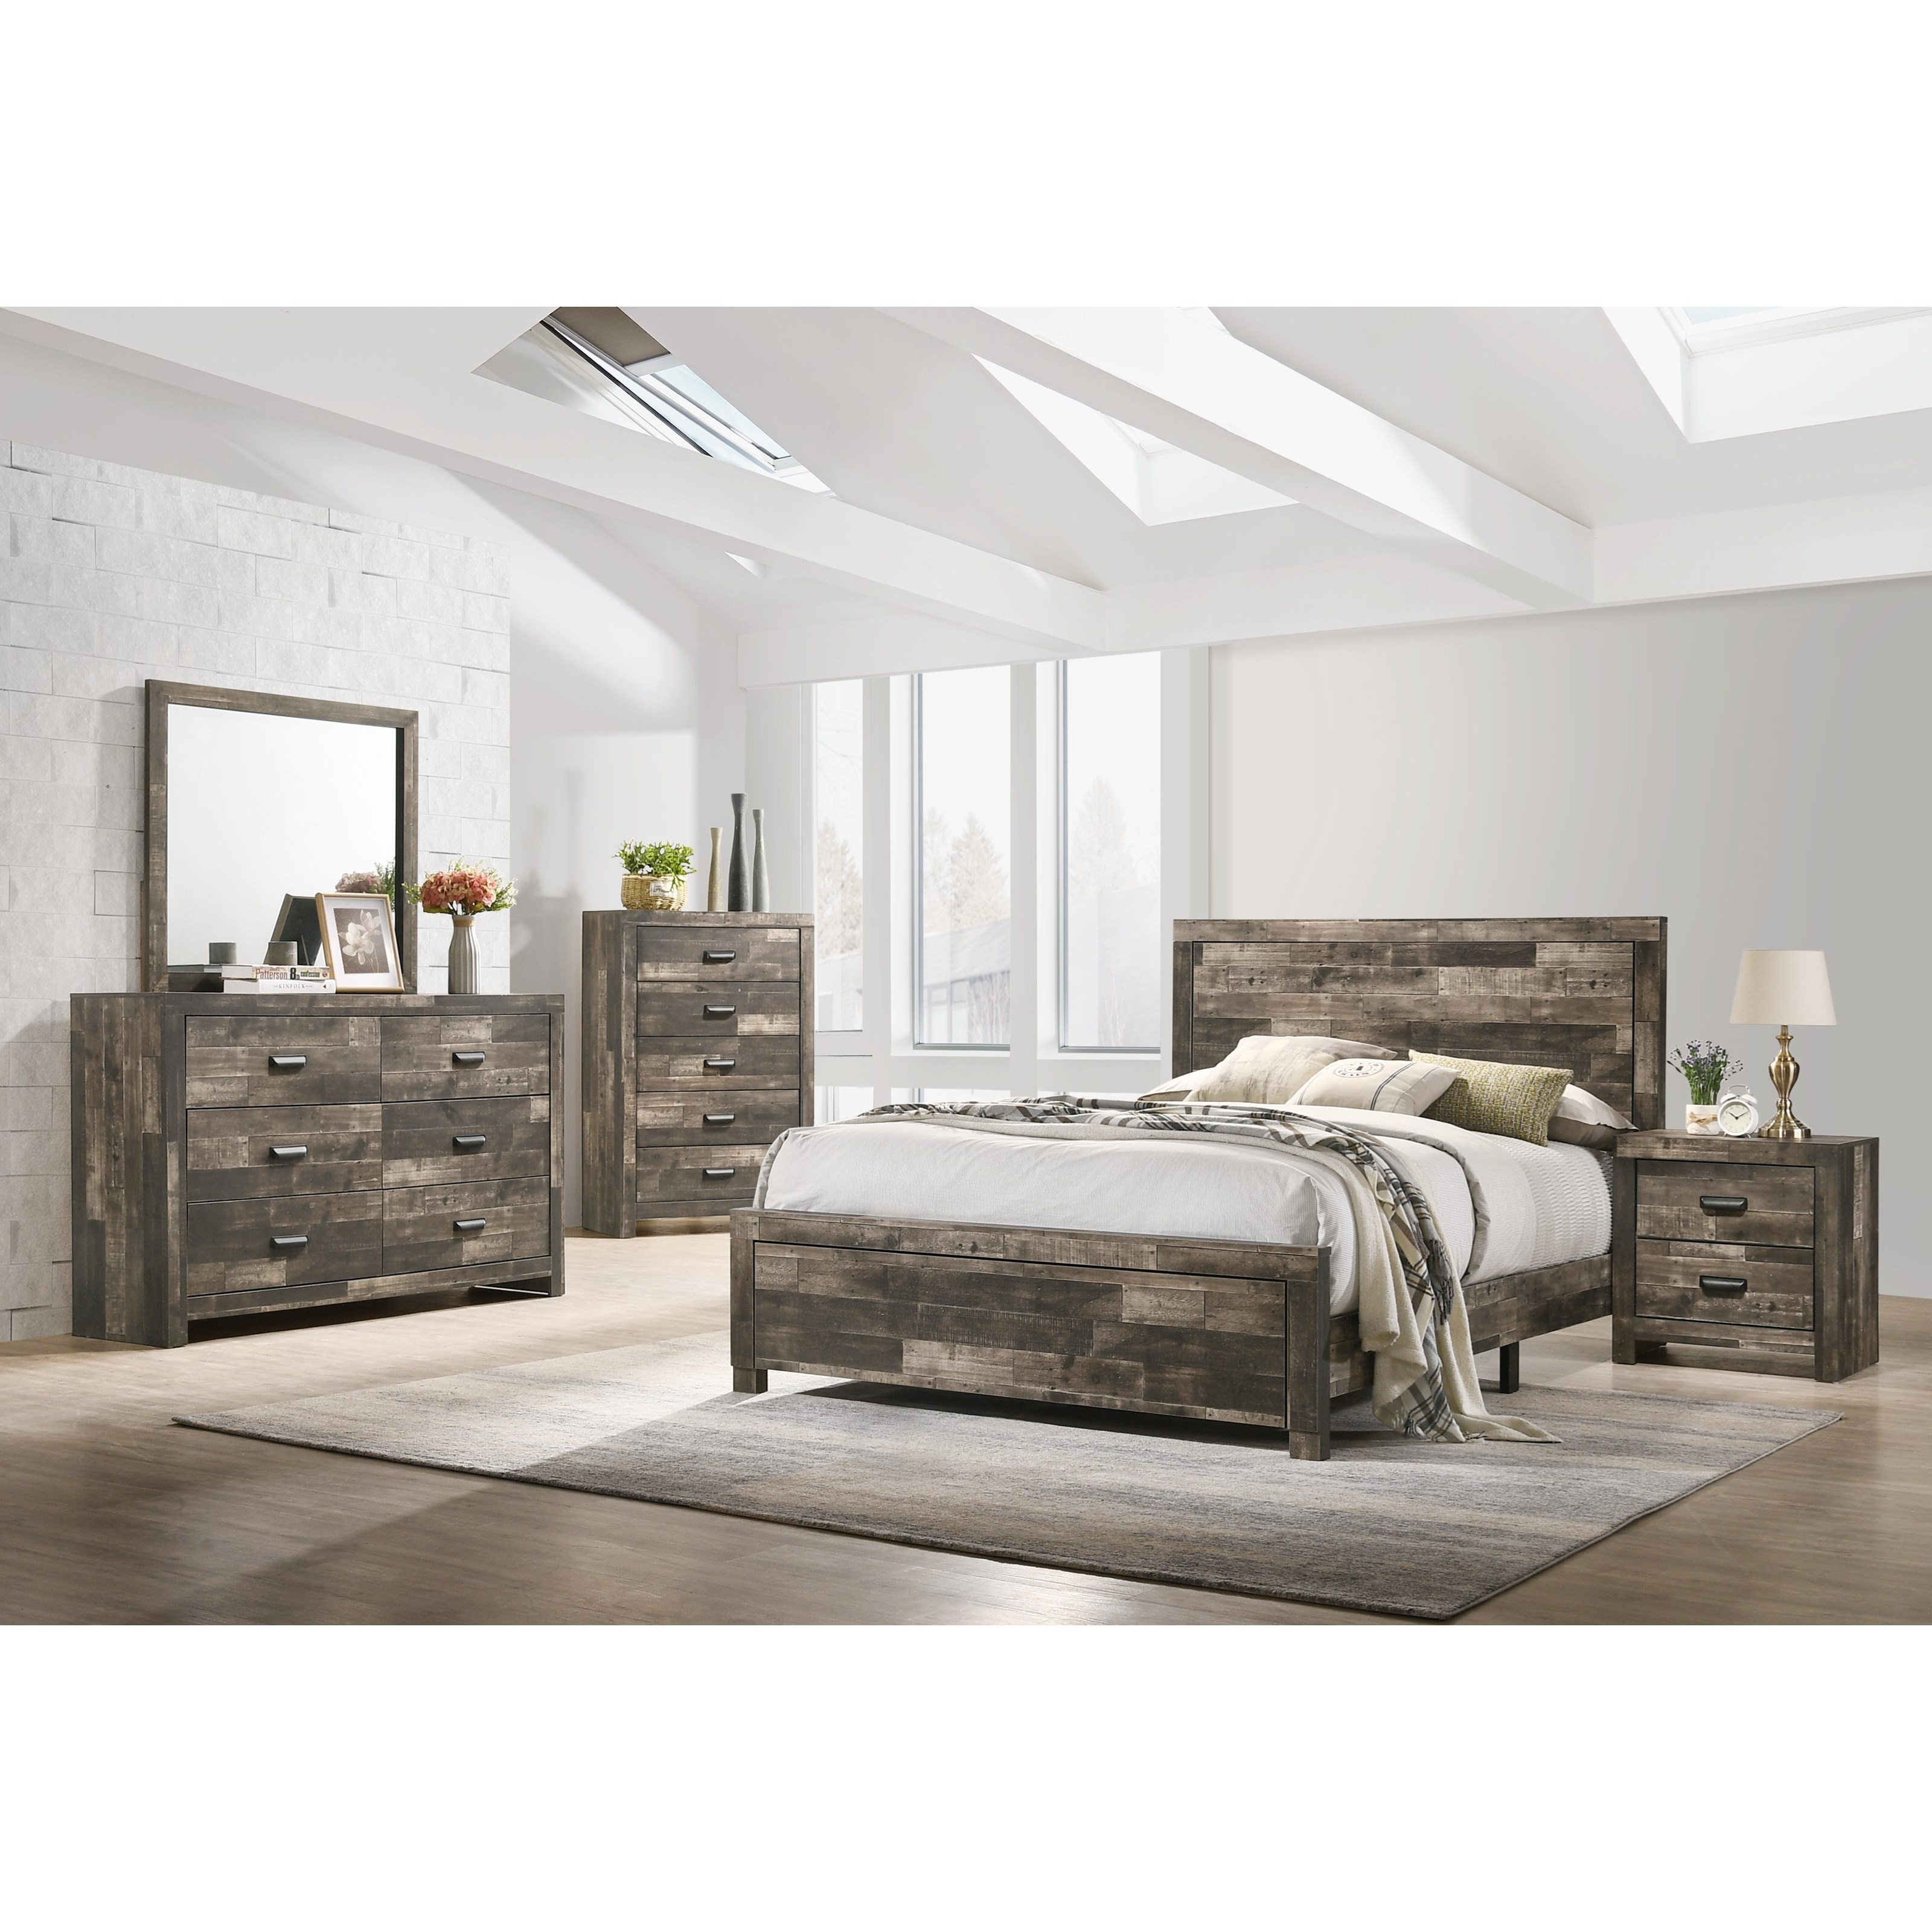 Tallulah King Bedroom Group by Crown Mark at Northeast Factory Direct